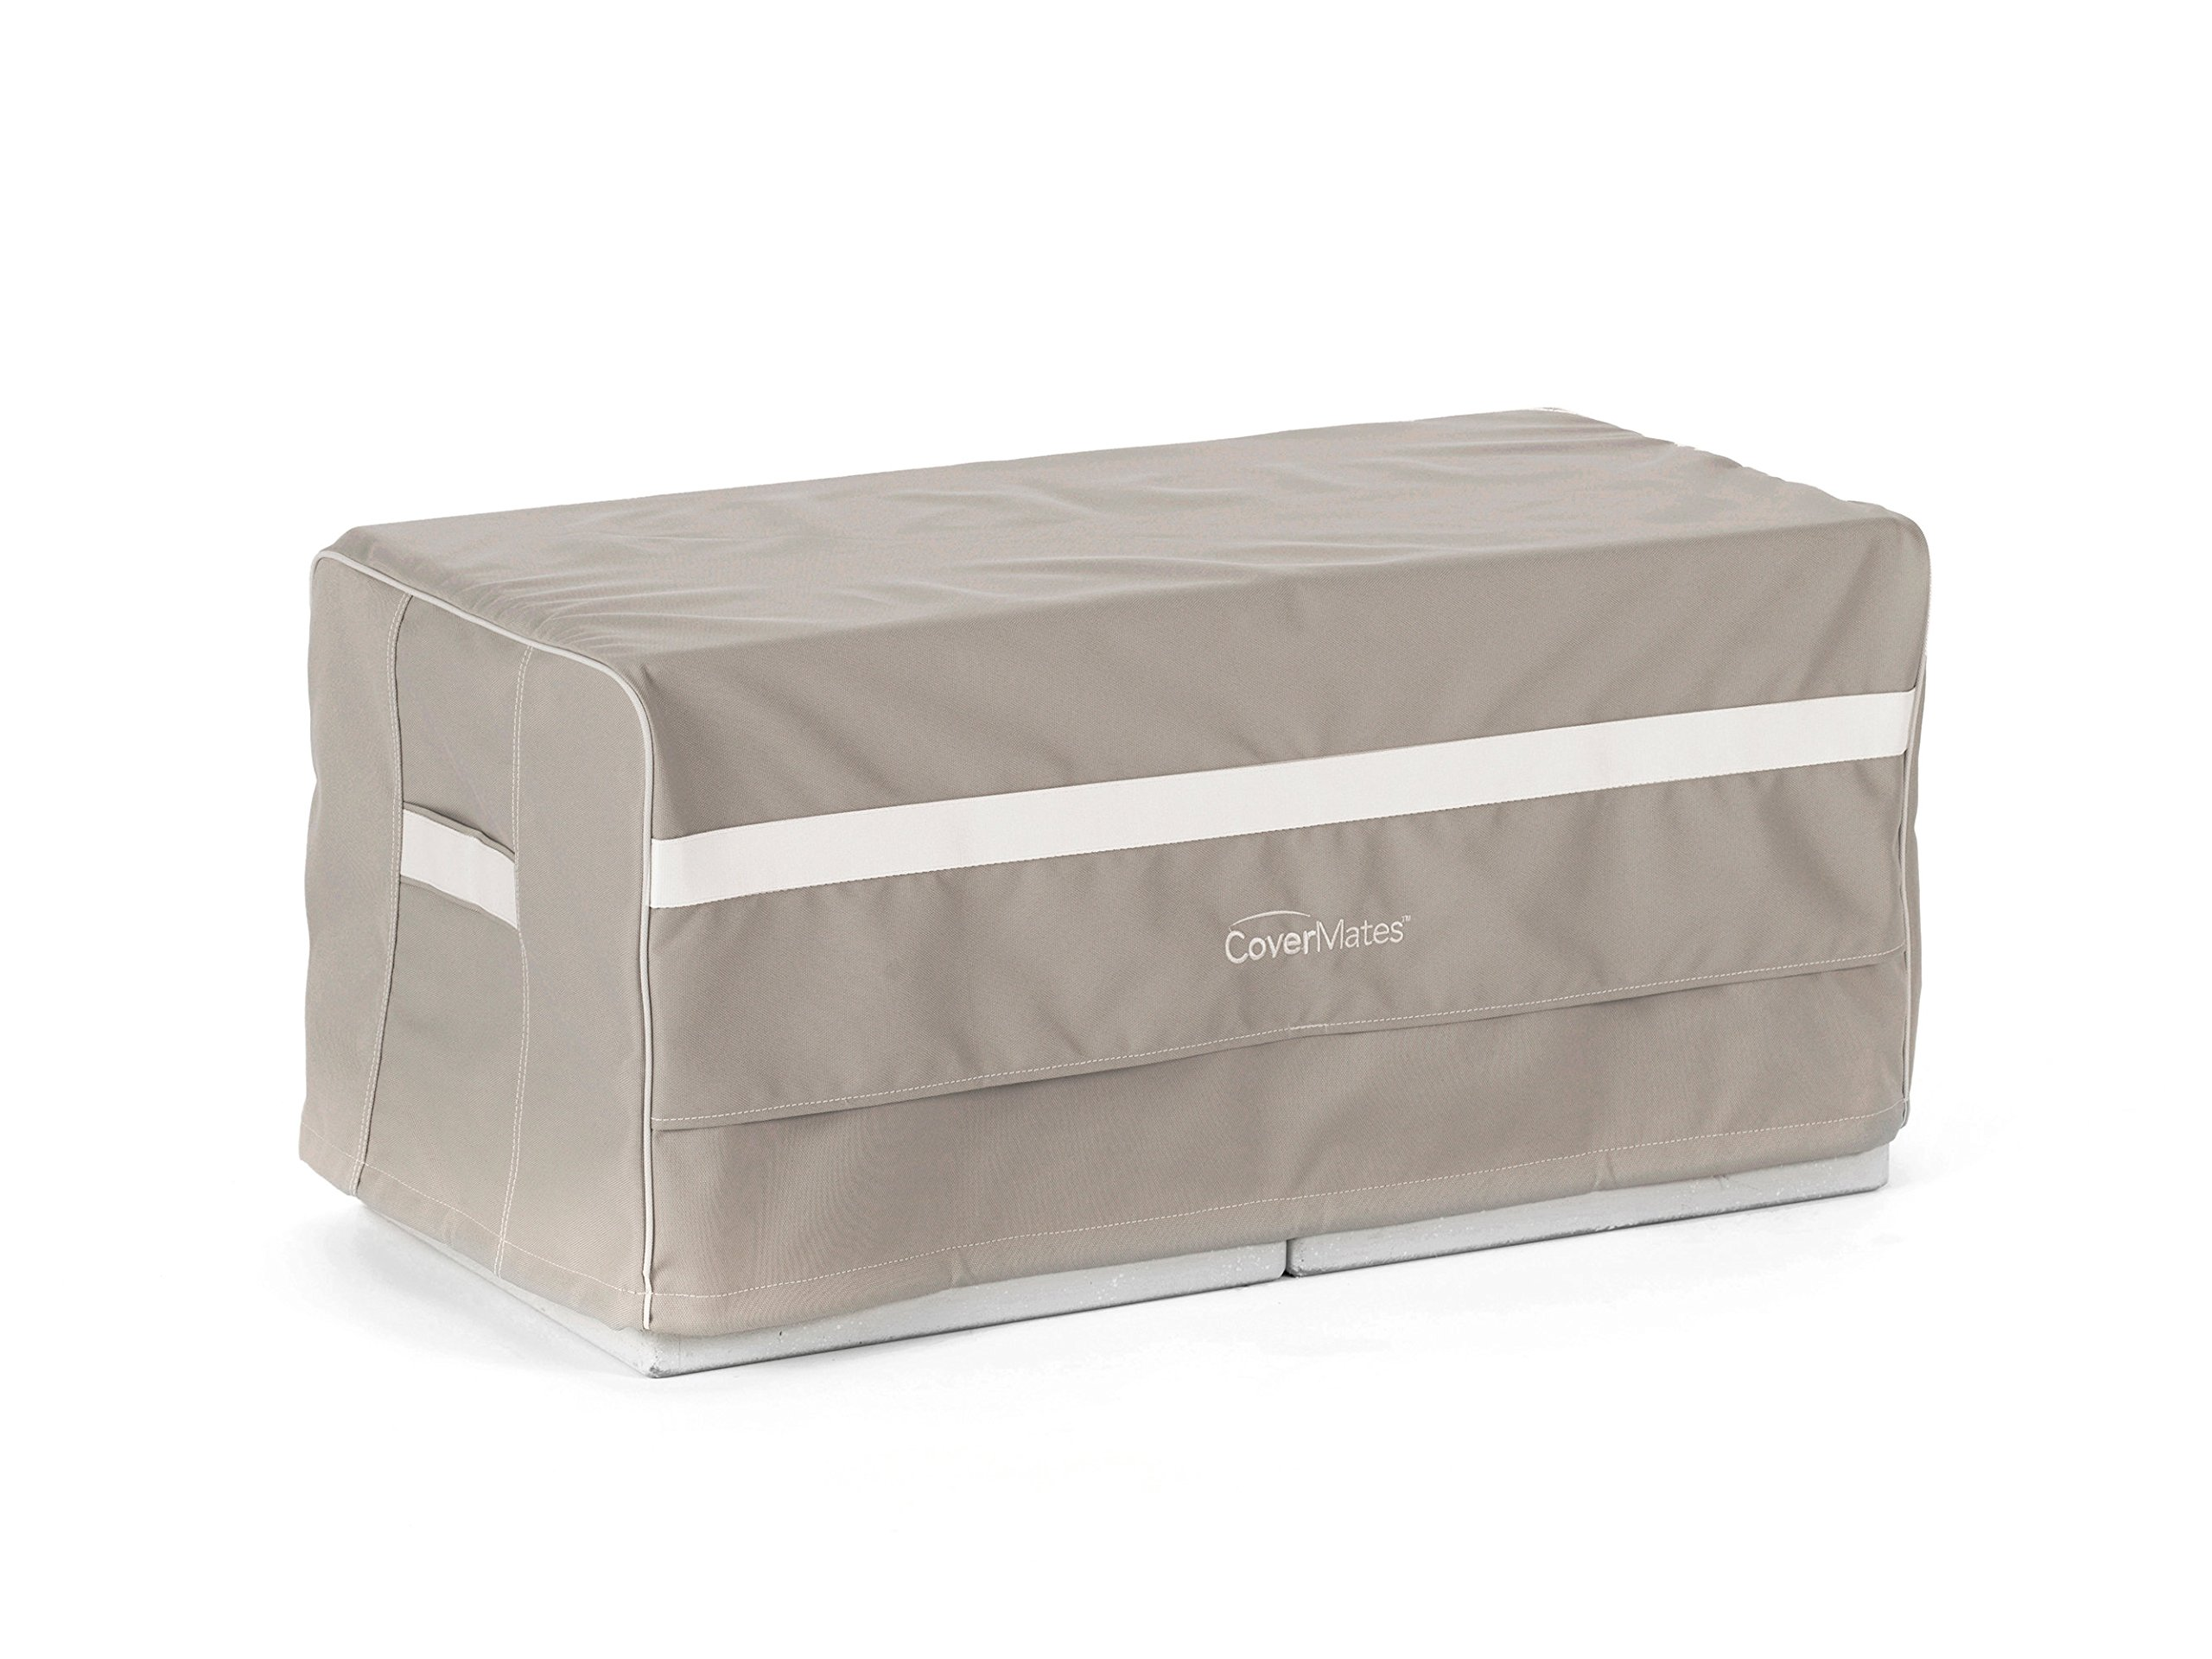 Covermates - Rectangular Ottoman Cover - 32W x 24D x 18H - Prestige - 900D Polyester - PVC Free Backing - Reinforced Handles - 7 YR Warranty - Weather Resistant - Clay by Covermates